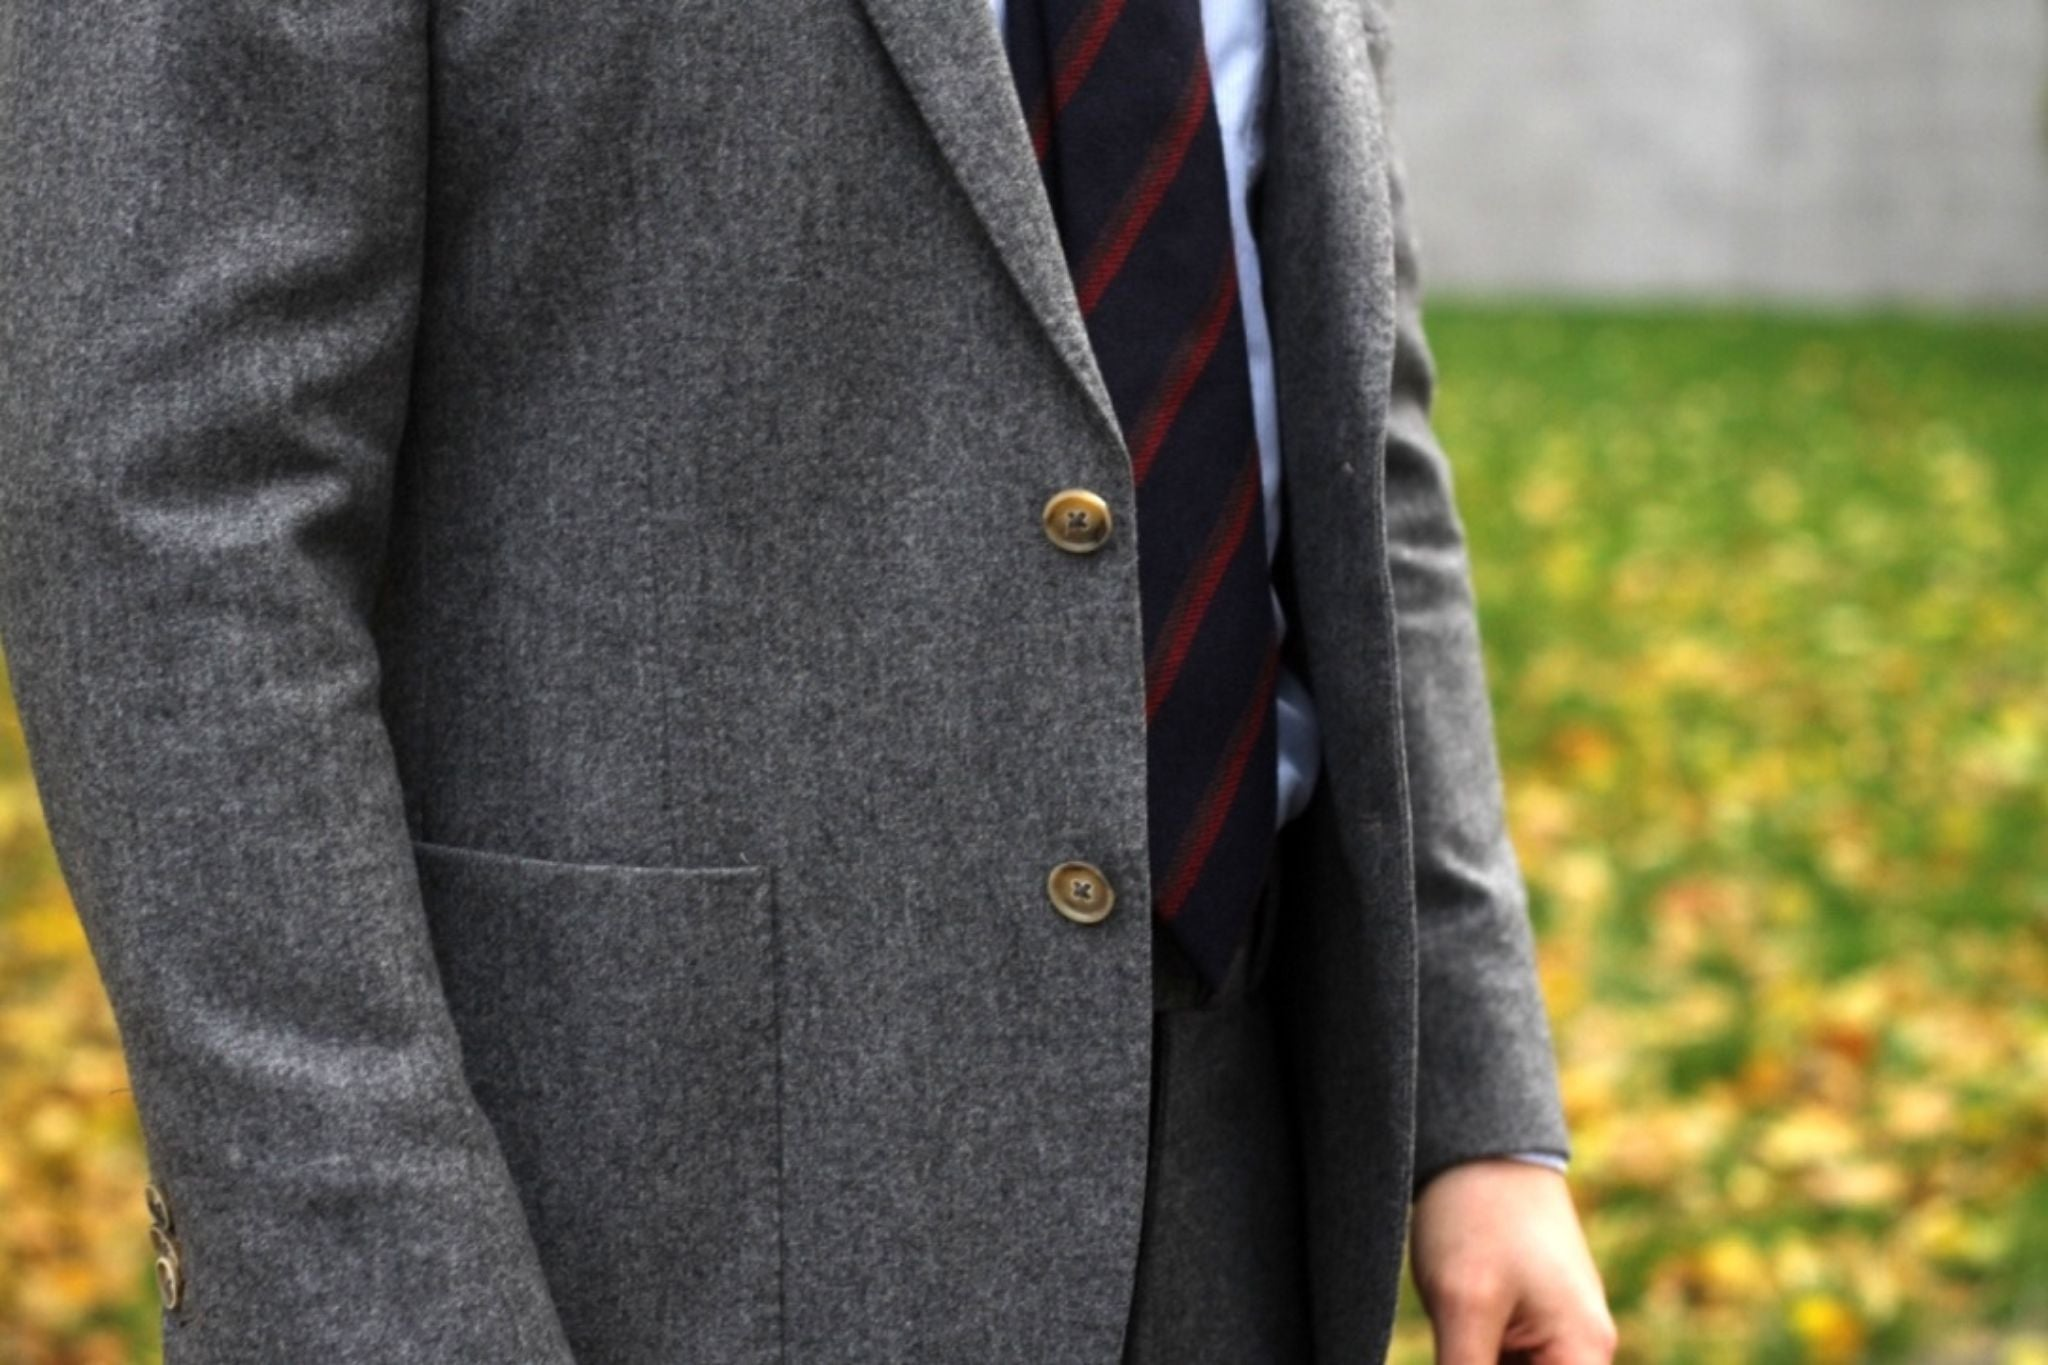 Suit with cashmere tie - Textures of gray flannel and striped cashmere